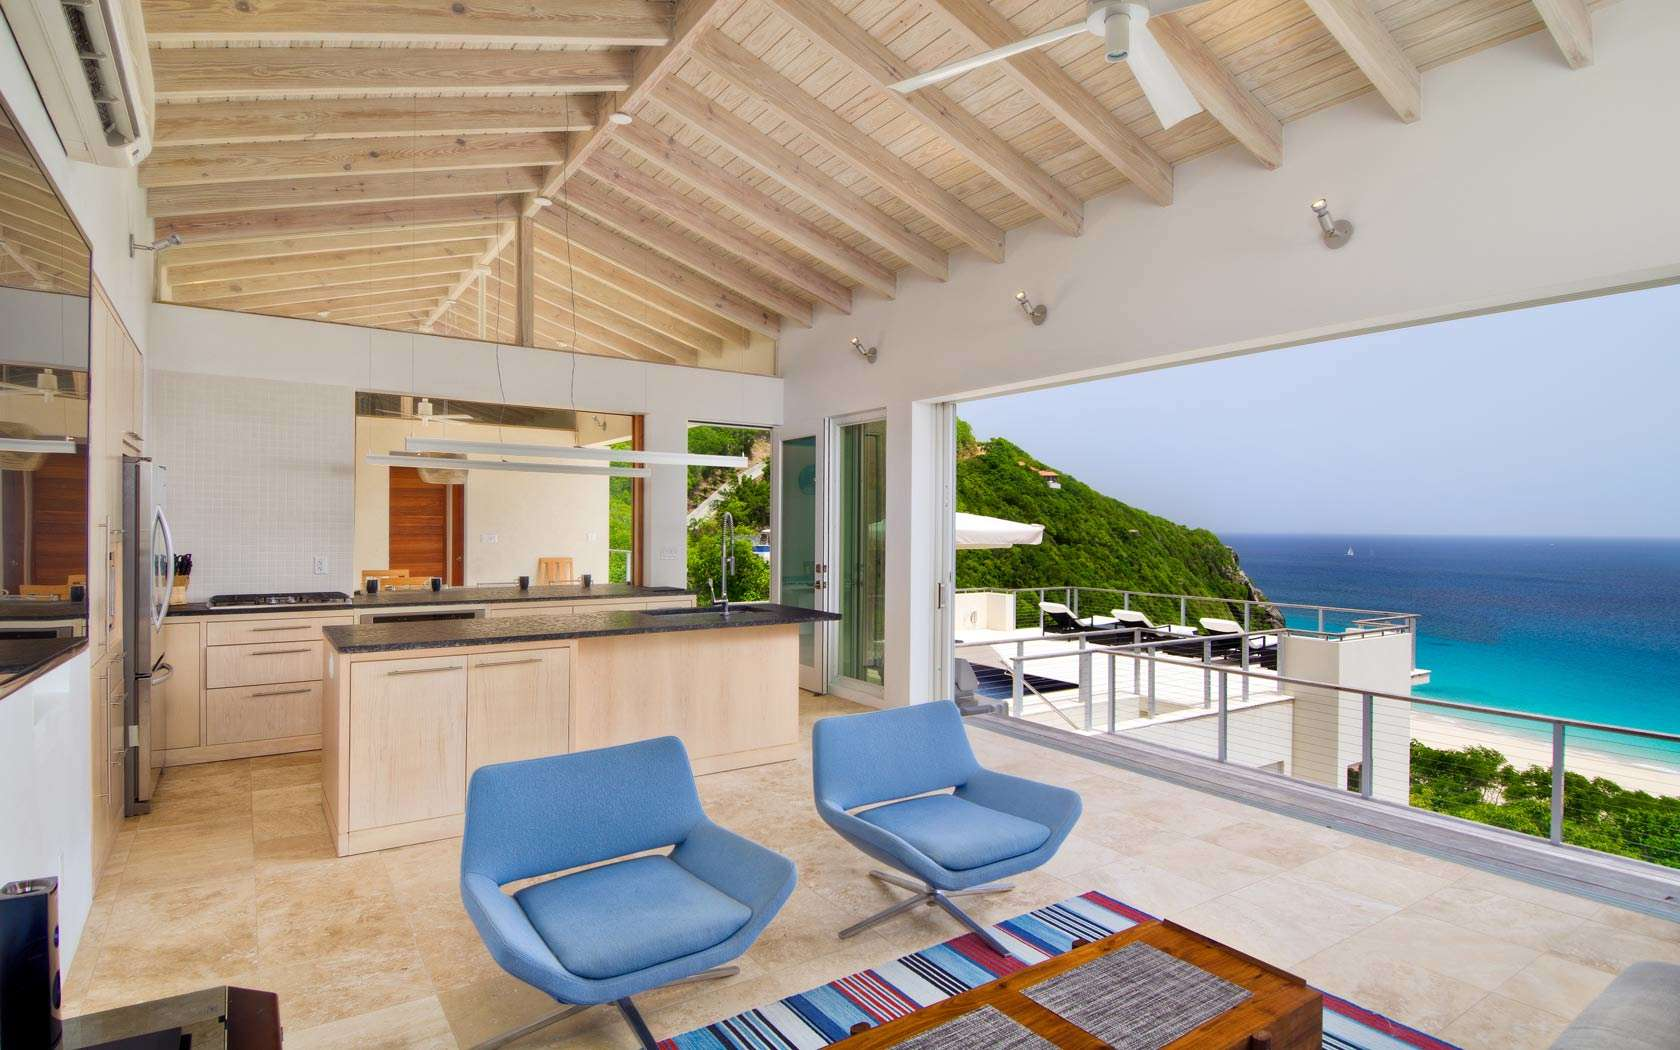 Luxury villa rentals caribbean - British virgin islands - Tortola - Trunk bay - Villa Lune - Image 1/11